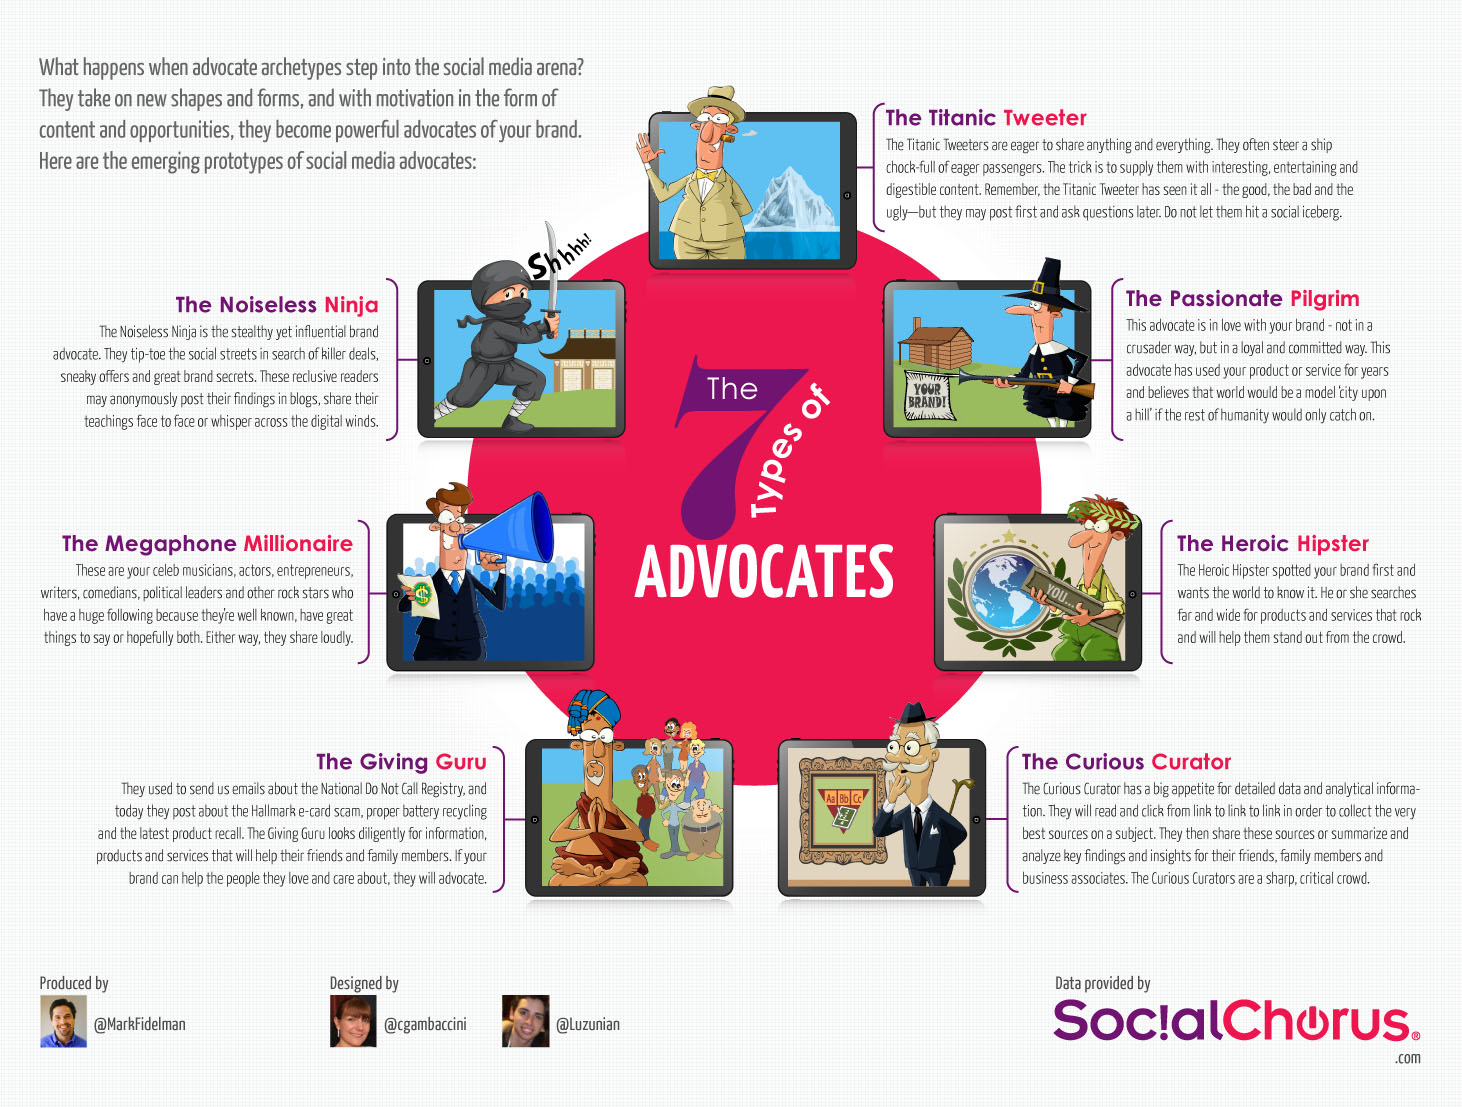 7 Prototypes Of Social Media Advocates [infographic]